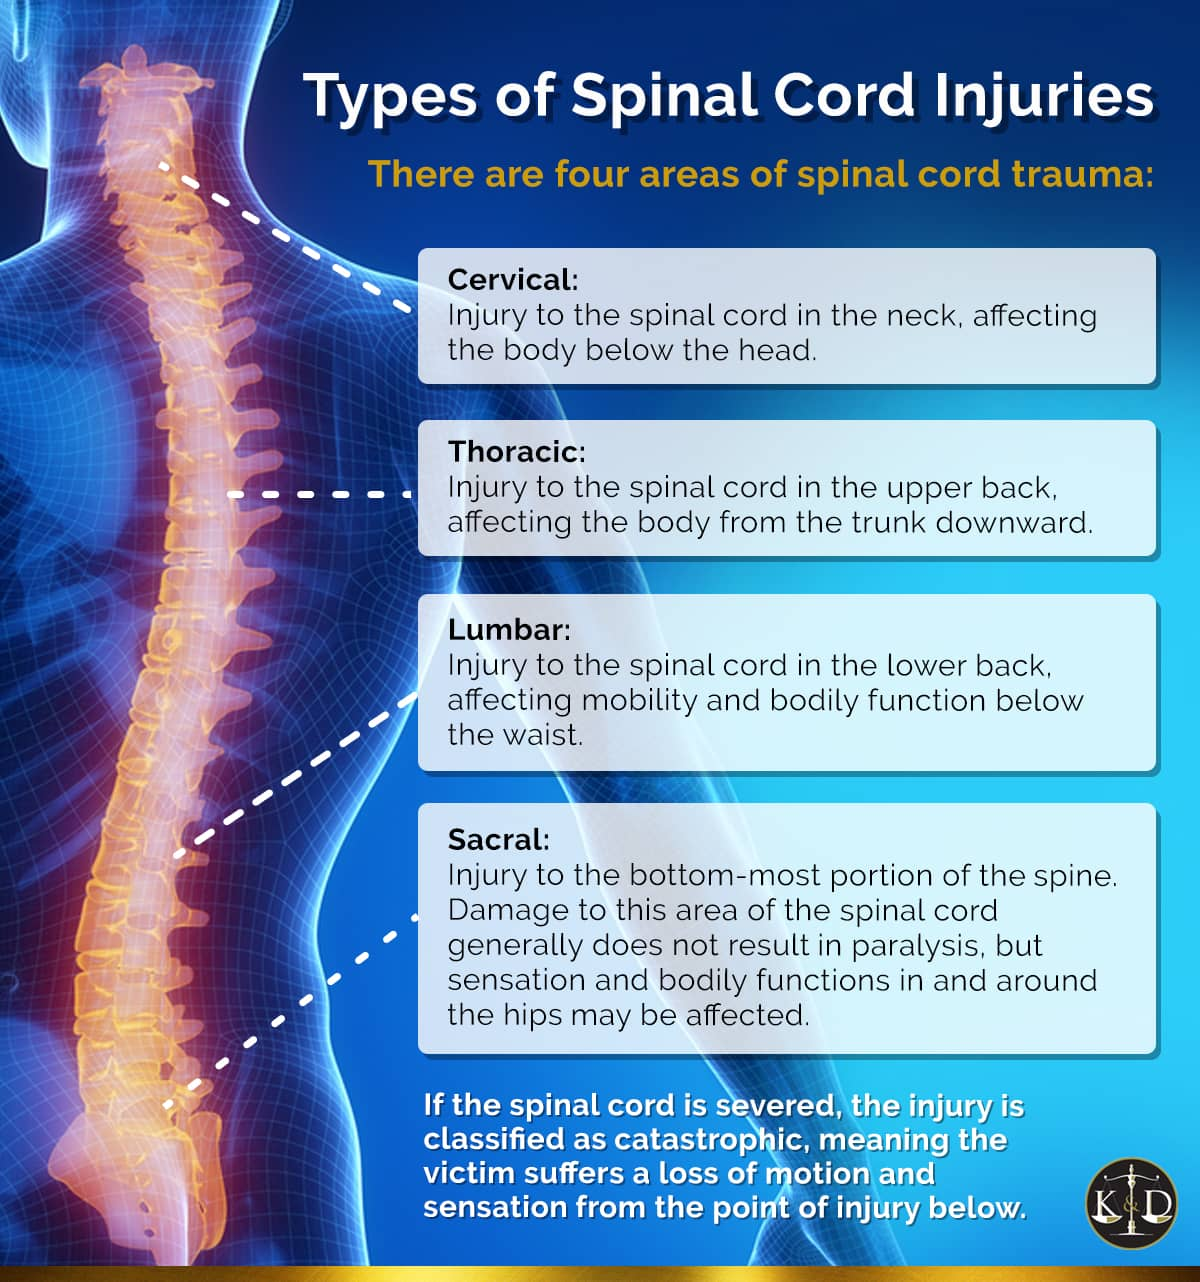 Types of Spinal Cord Injuries | Spine Injury Lawyers Florida